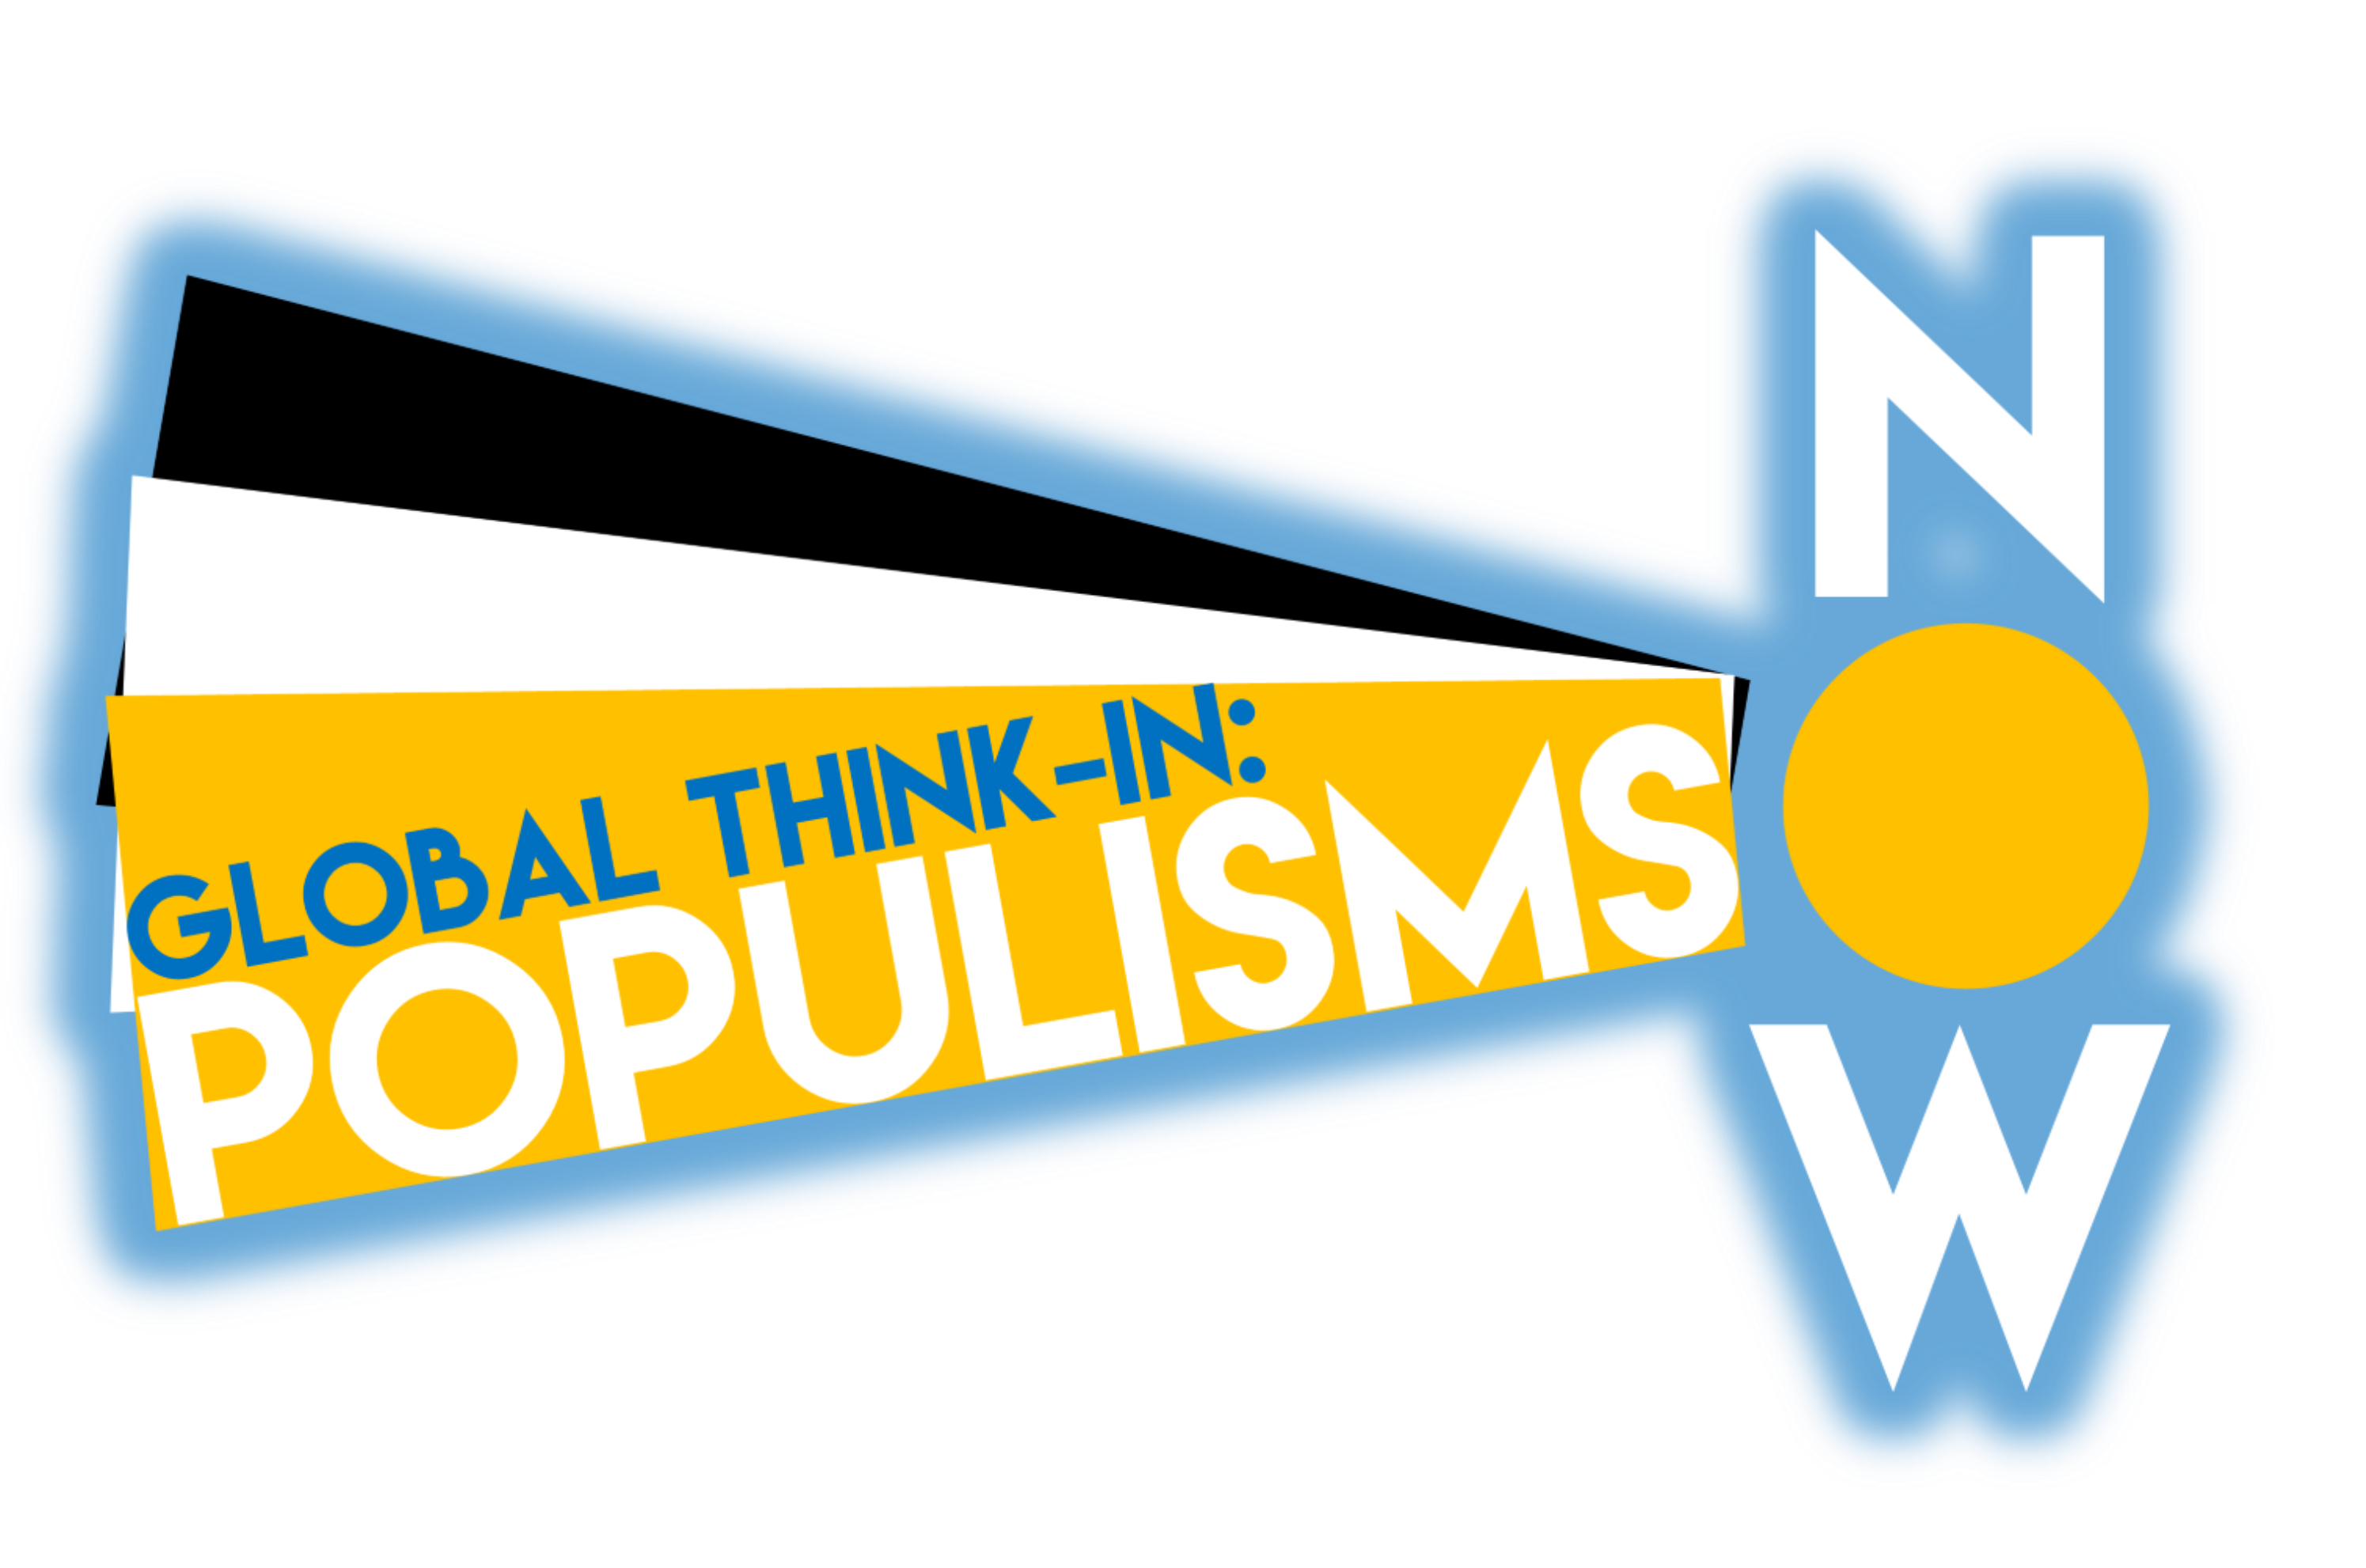 Global Think-in: Populisms Now